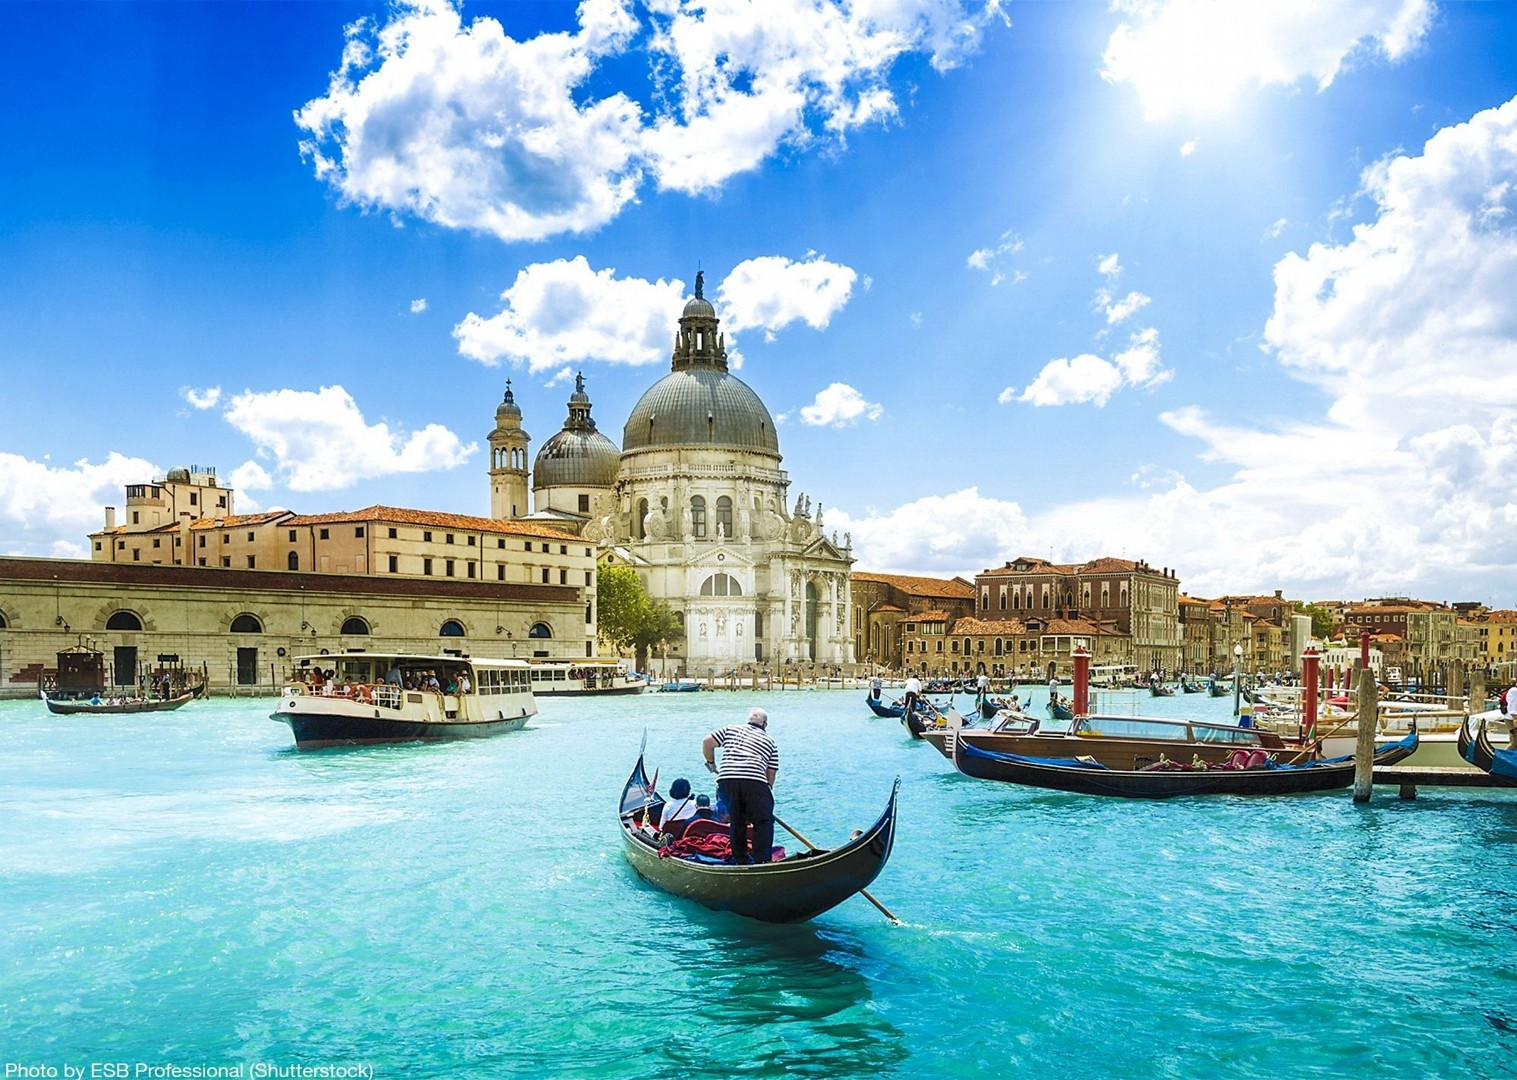 classic-venice-tour-lake-garda-piazza-san-marco-culture-cycling-holiday.jpg - Italy - Lake Garda to Venice - Self-Guided Leisure Cycling Holiday - Italia Leisure and Family Cycling